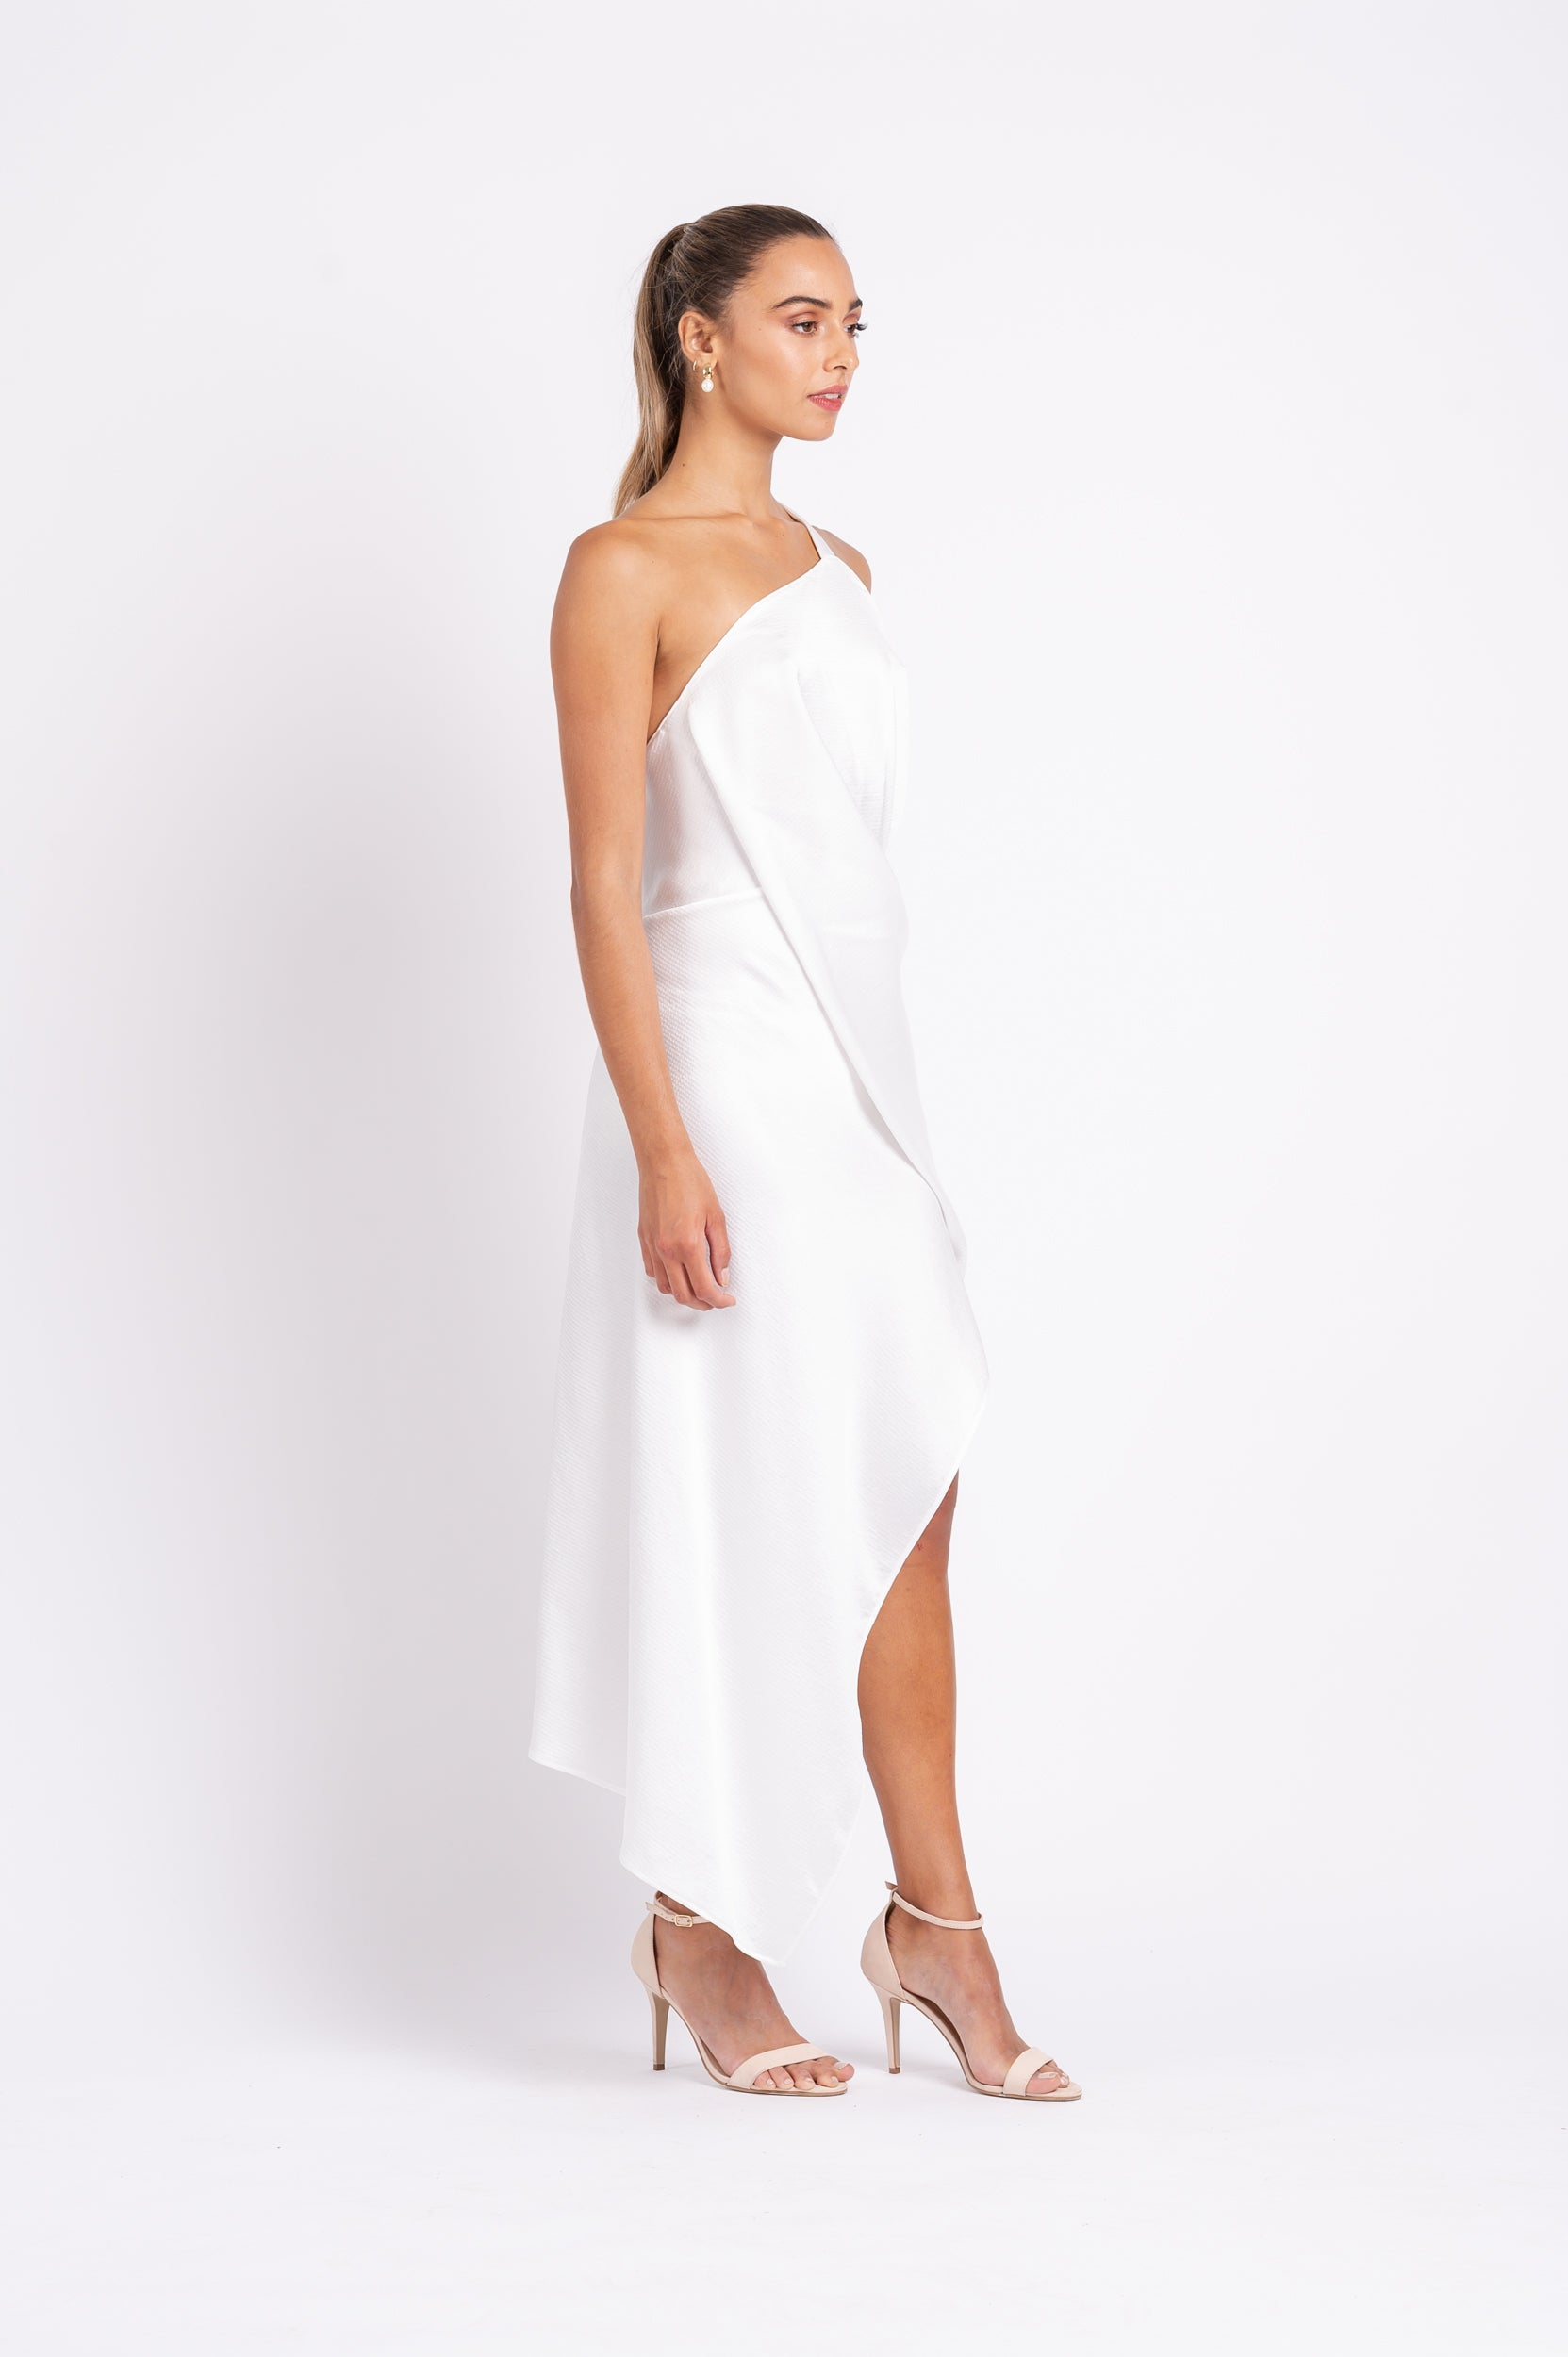 HARLEQUIN DRESS IN WHITE ON WHITE PO